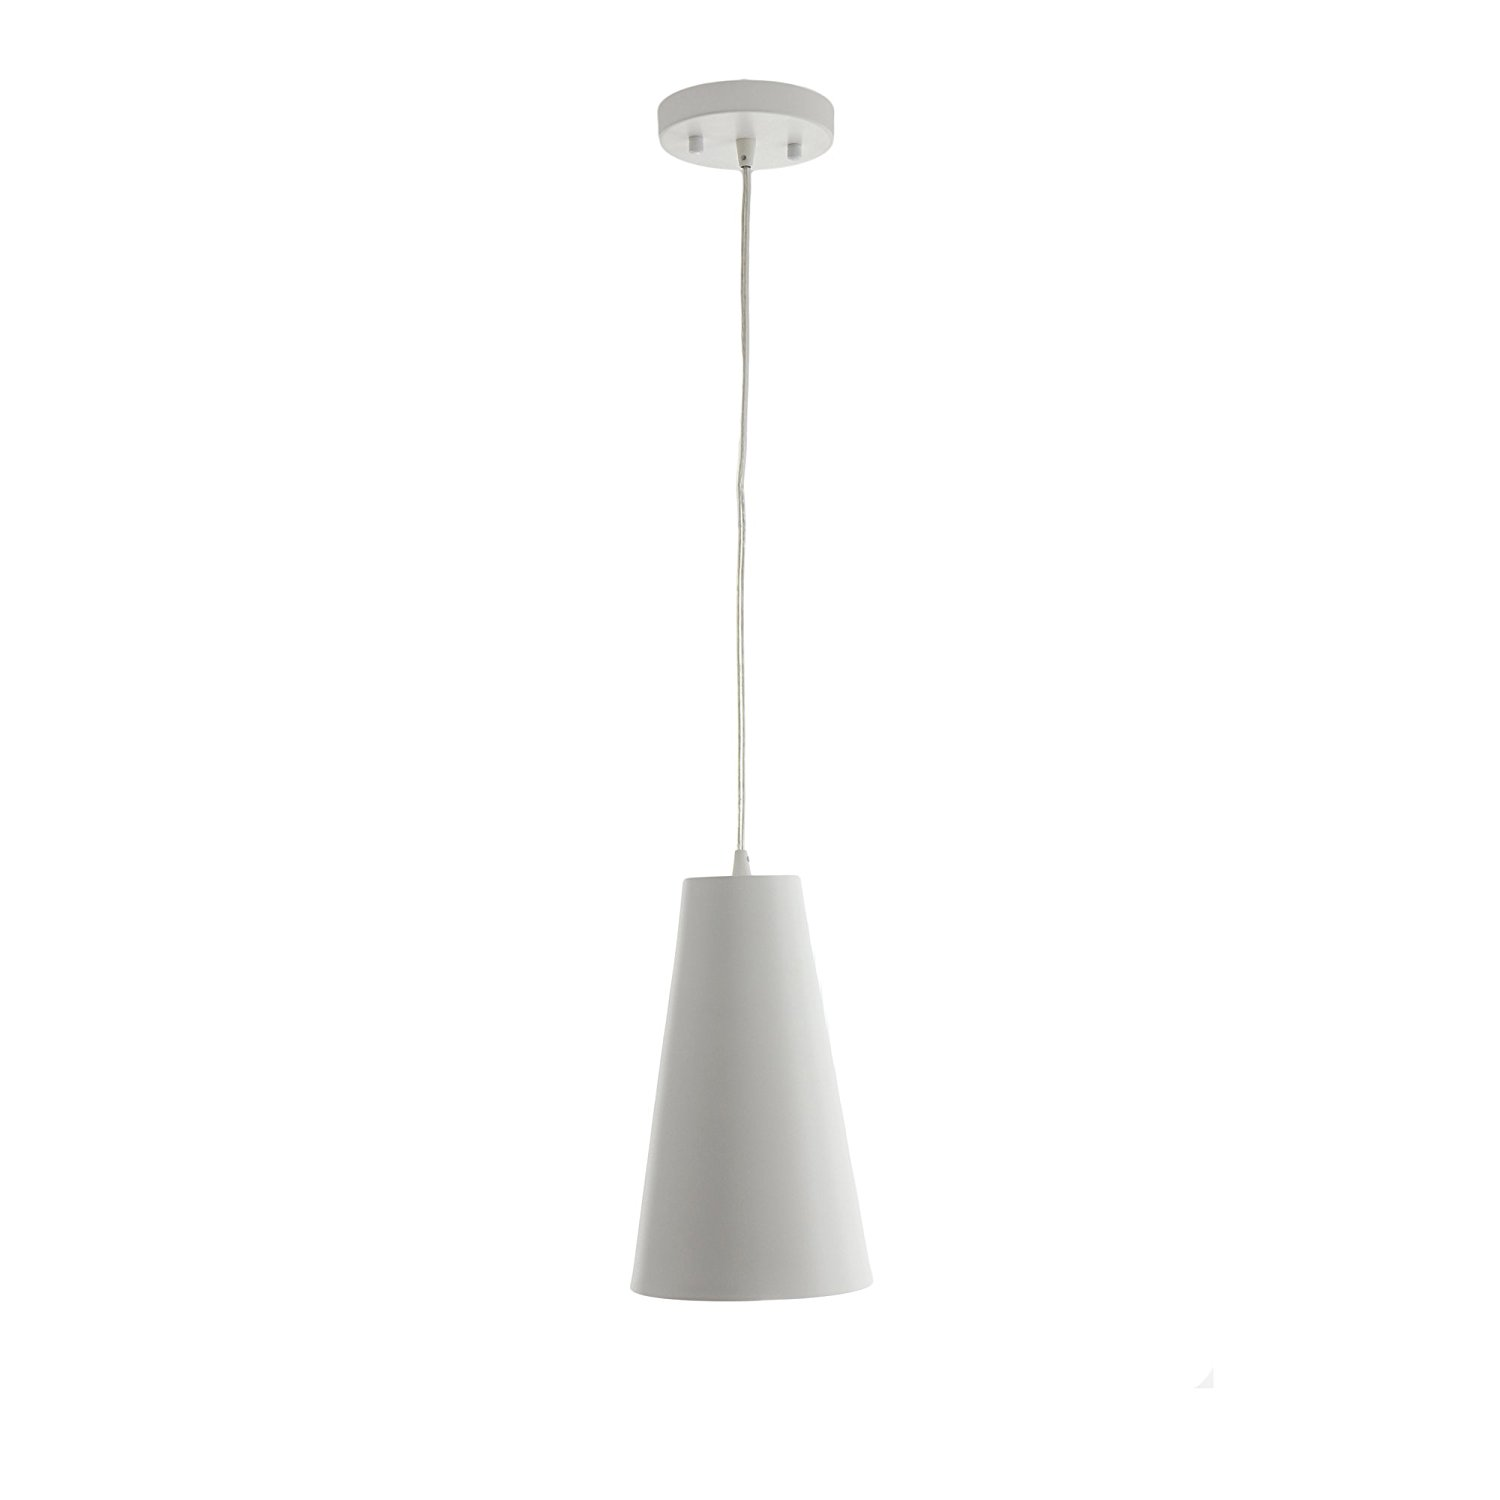 "VONN VMP21511WH Modern LED Pendant Lighting with Metal Shade with Adjustable Hanging Light, 11"" x 6"", White"